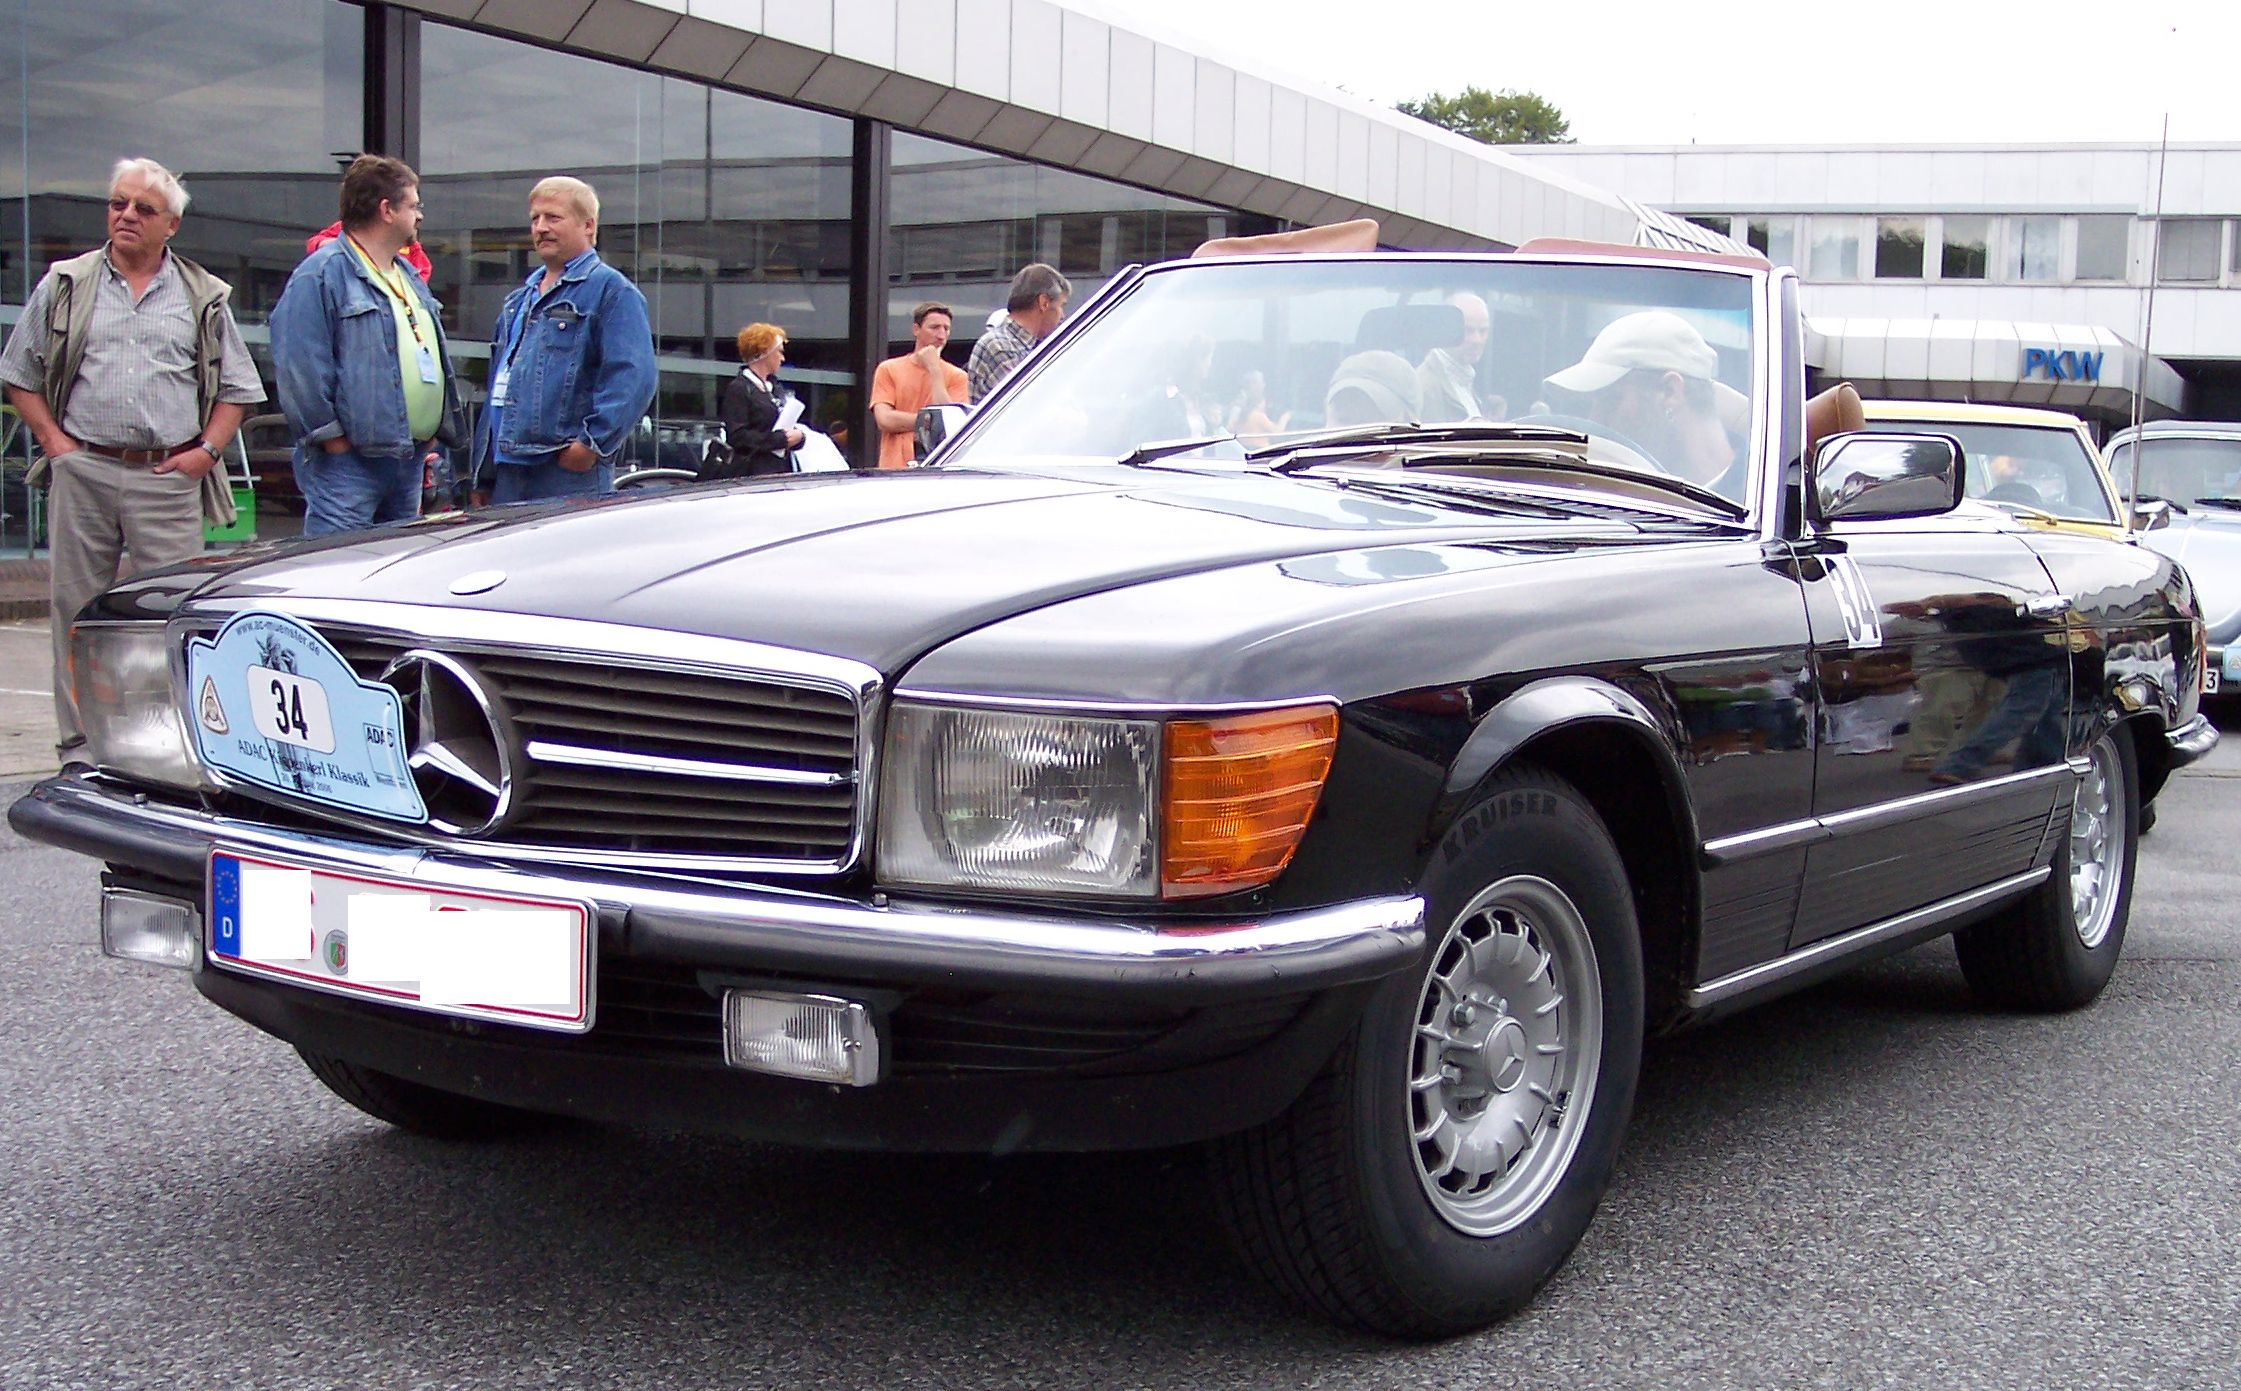 File:Mercedes-Benz 450 SL